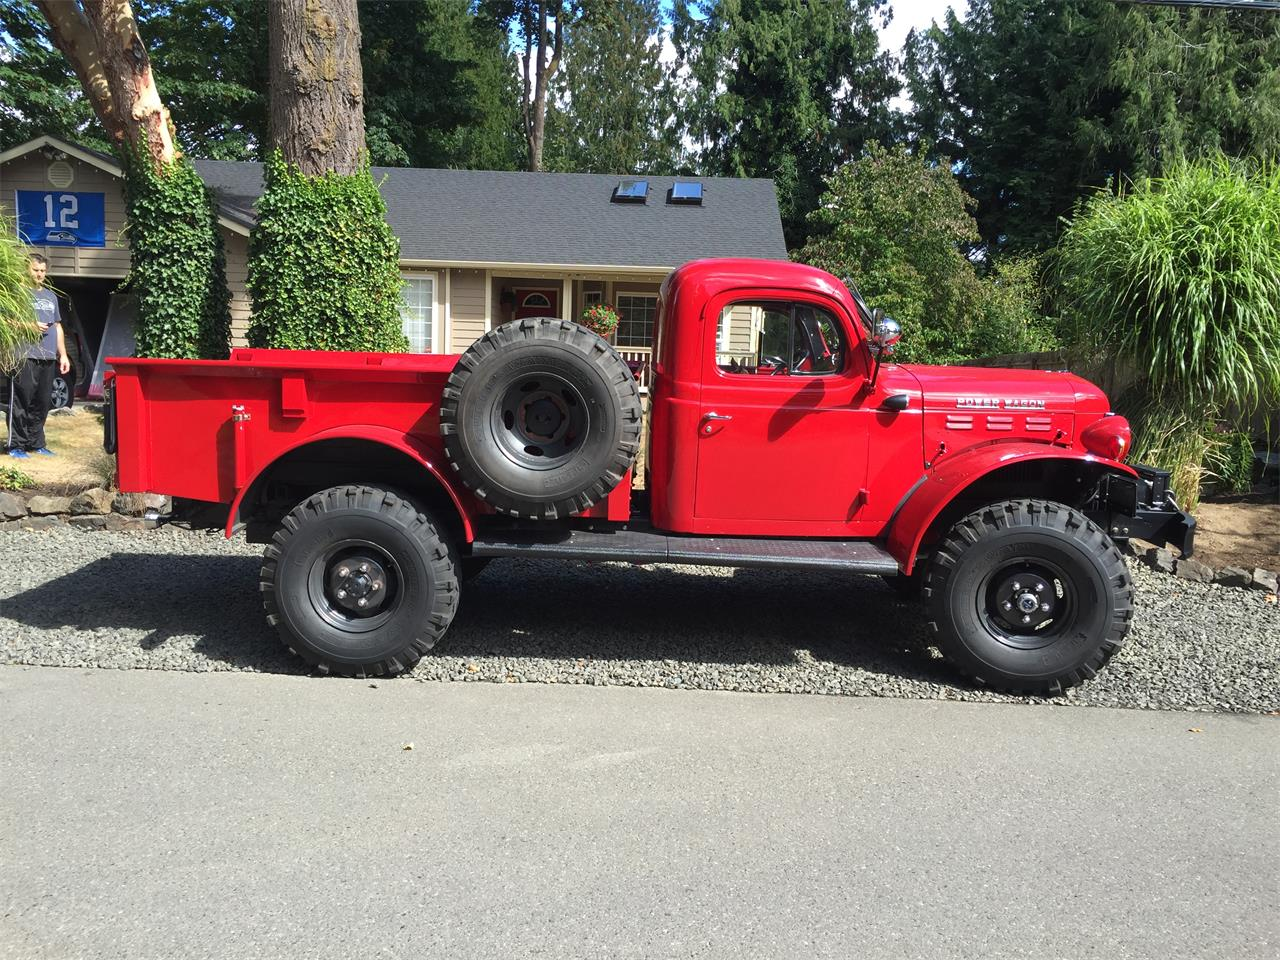 Large Picture of Classic 1949 Dodge Power Wagon located in Lacey Washington - $55,000.00 Offered by a Private Seller - JS10